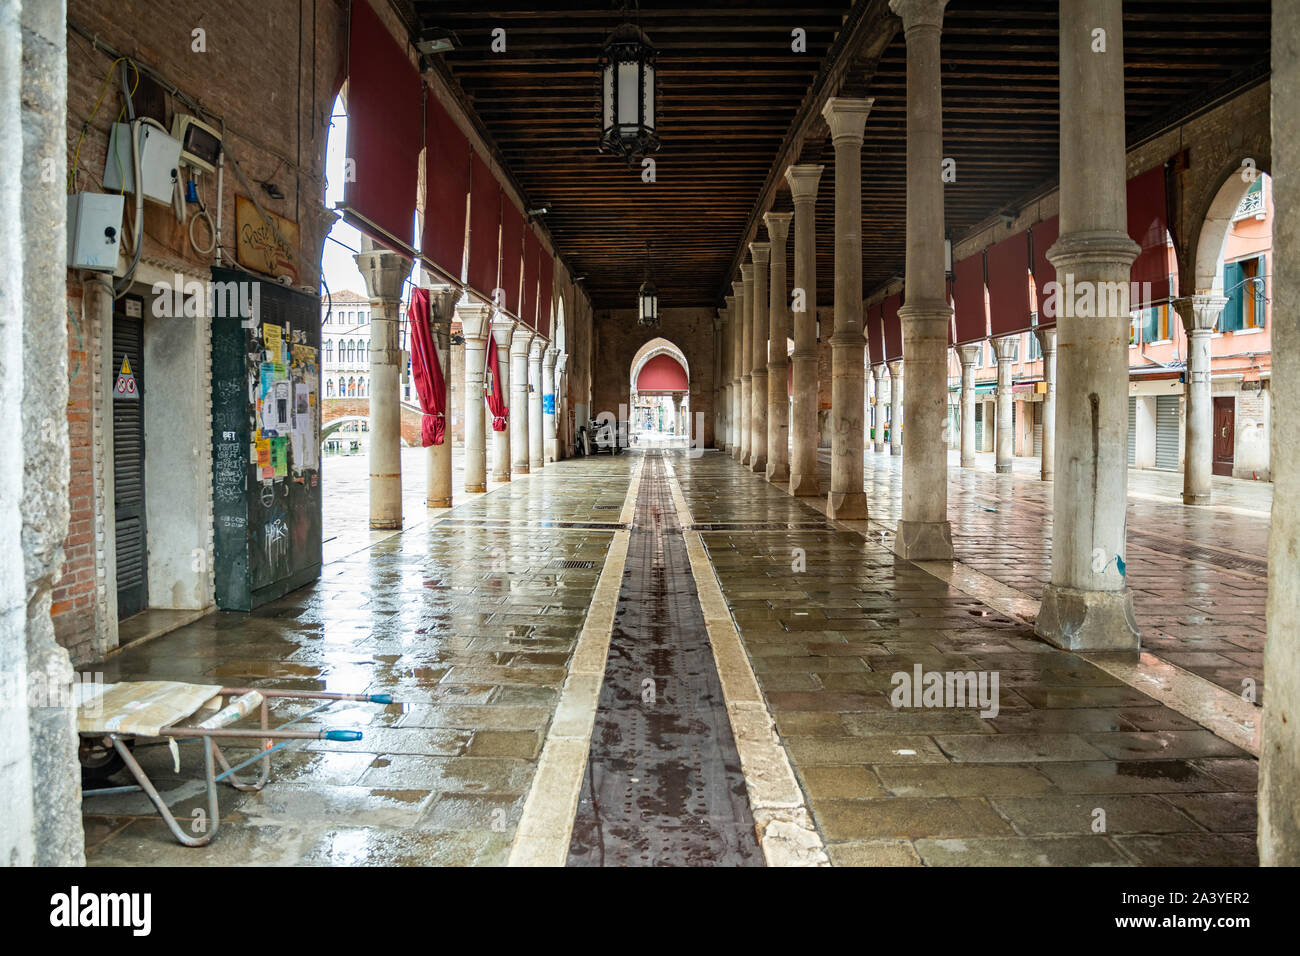 The famous fish market near the Rialto Bridge in Venice - Italy, when it is empty and clean at the end of a working day. Stock Photo